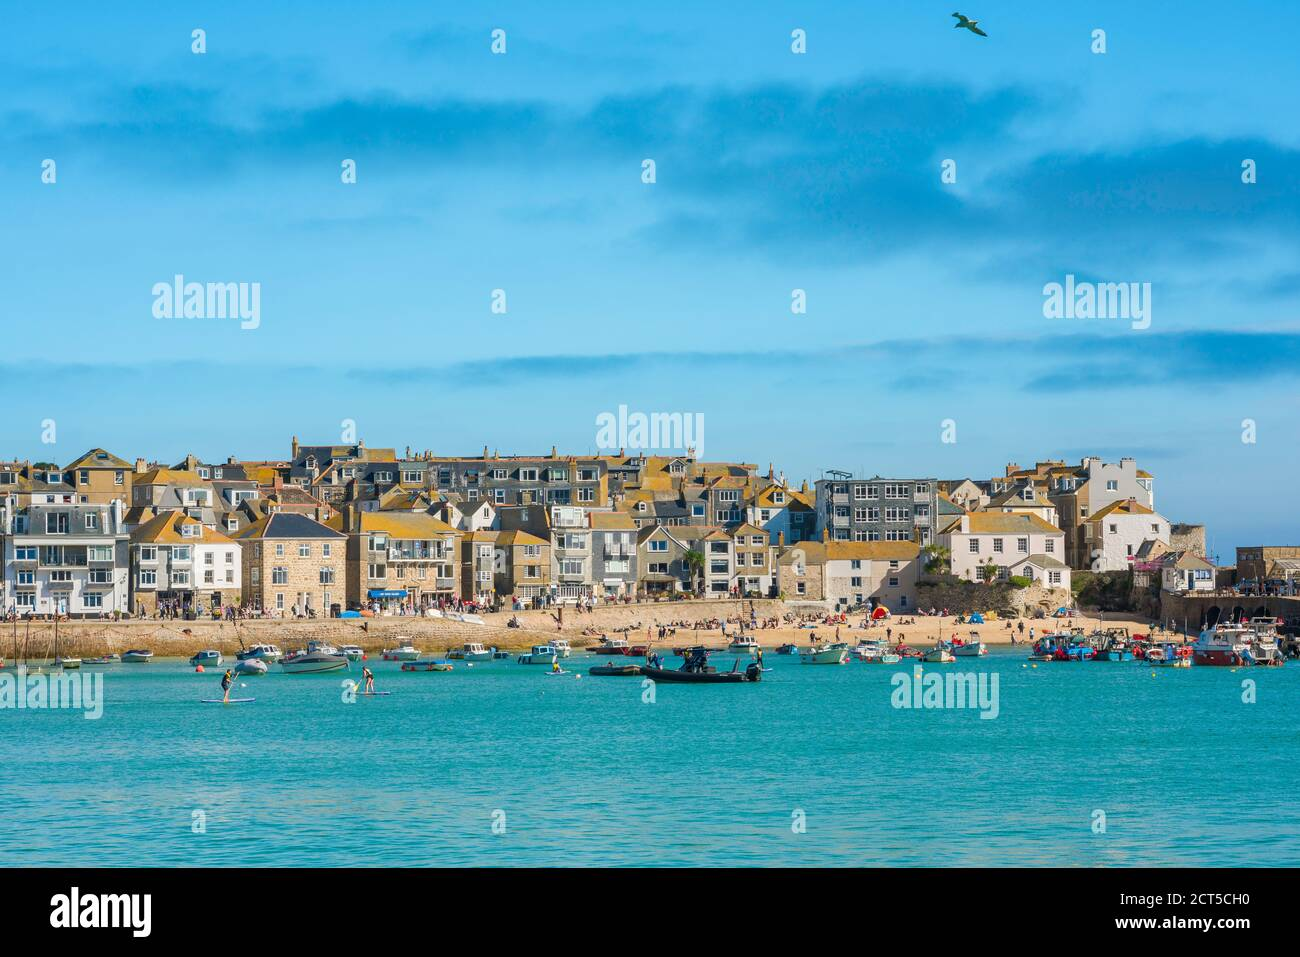 Cornwall property, view in summer across St Ives harbour towards beachfront property, Cornwall, south west England, UK Stock Photo